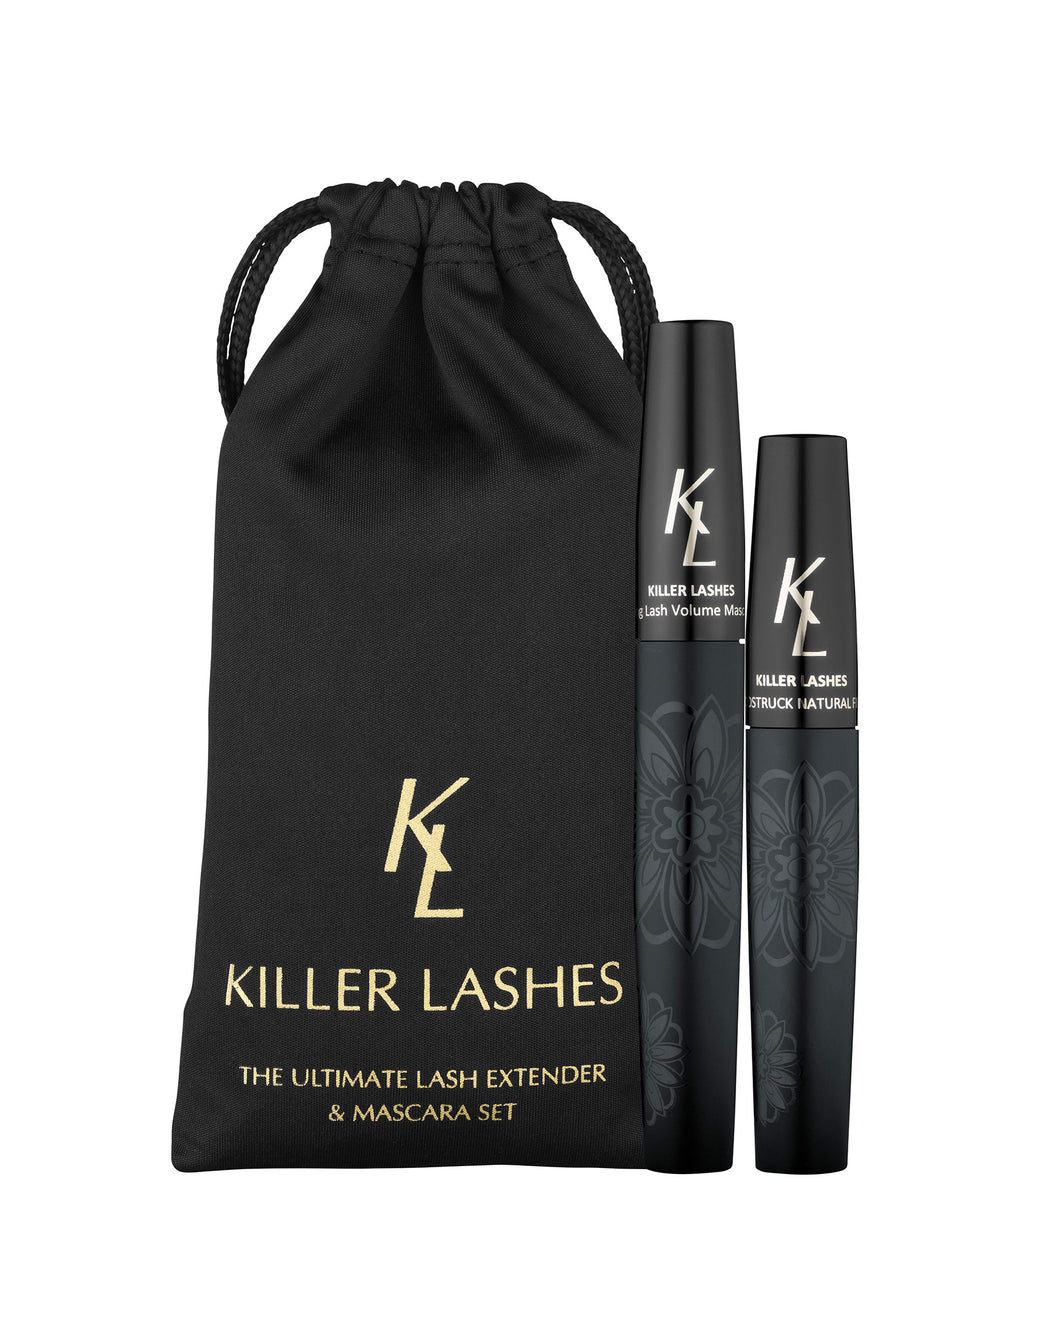 MD3 Killer Lashes - Waterproof Black Mascara & Fiber Lash Extender - MD3 Advanced Skin Care